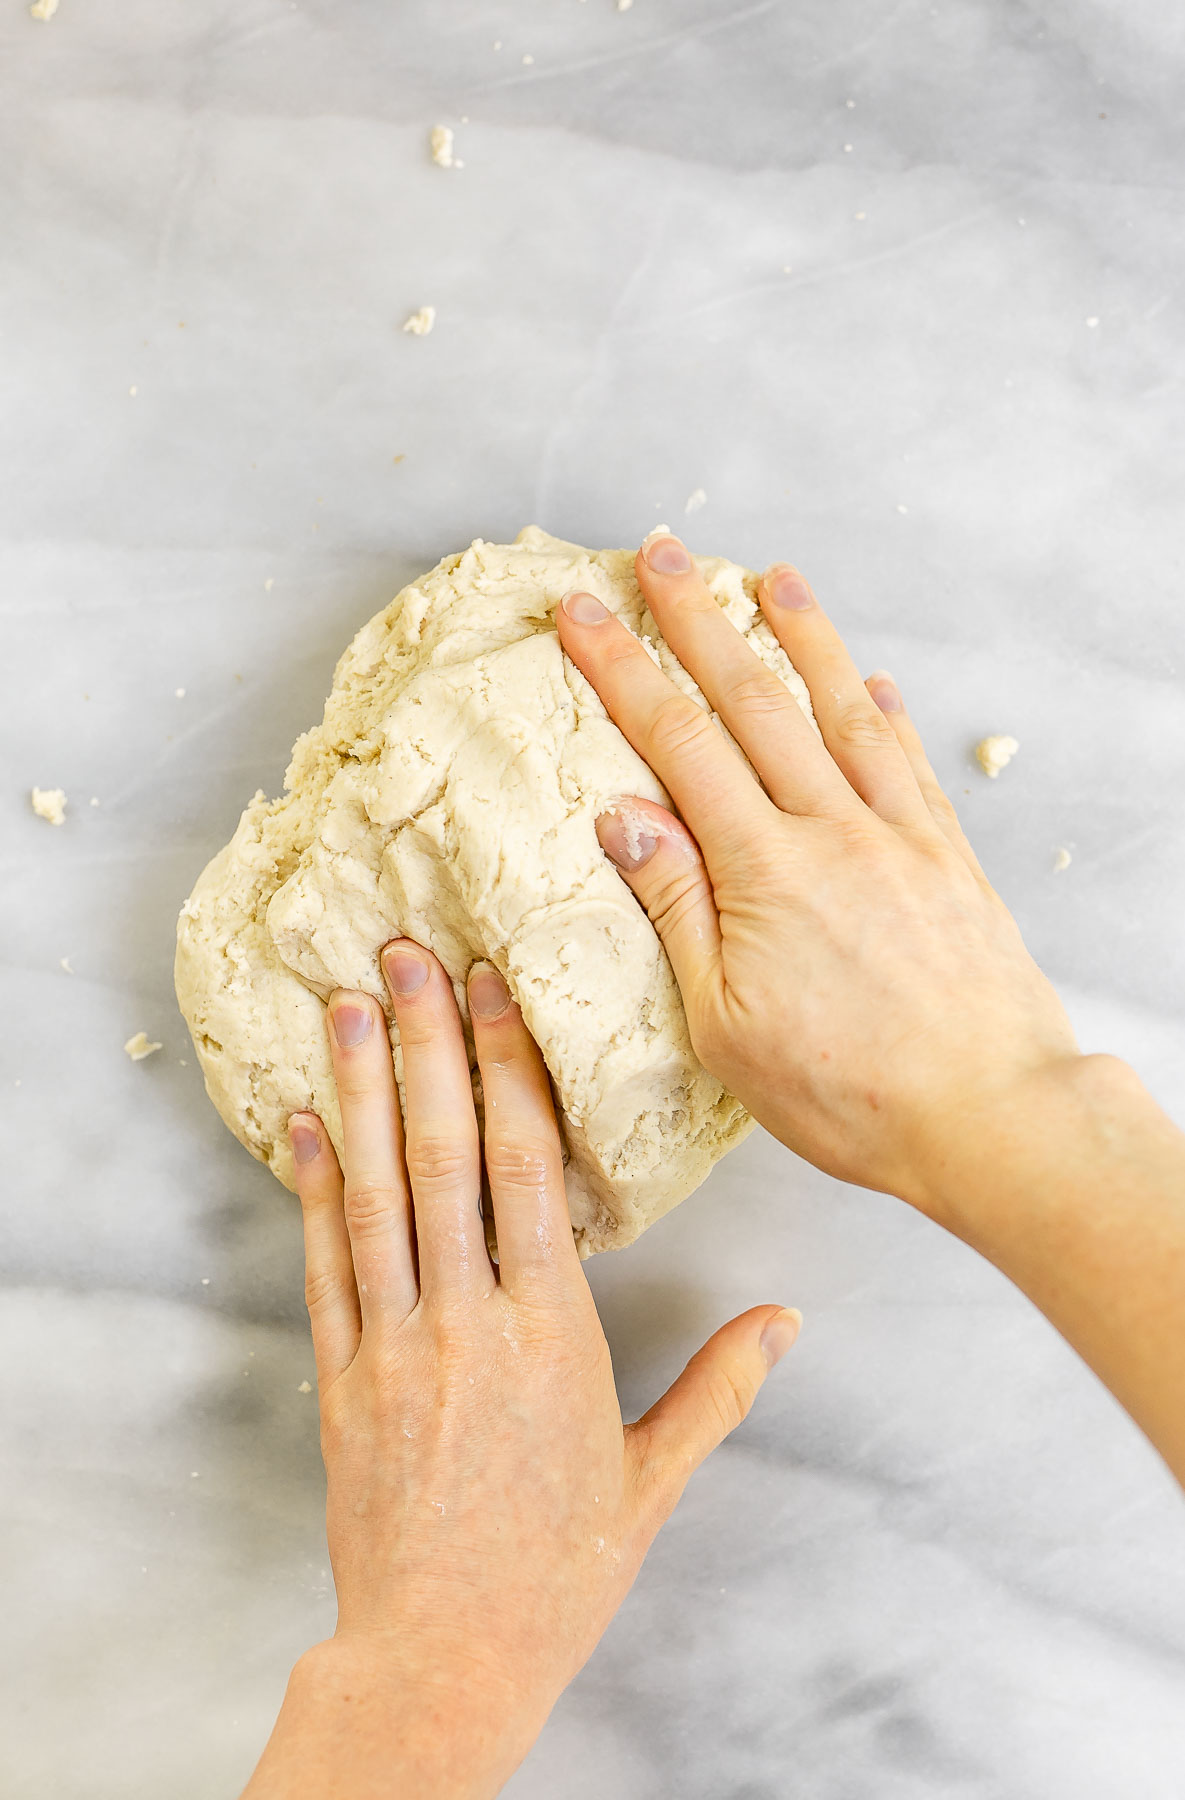 Kneading the dough.